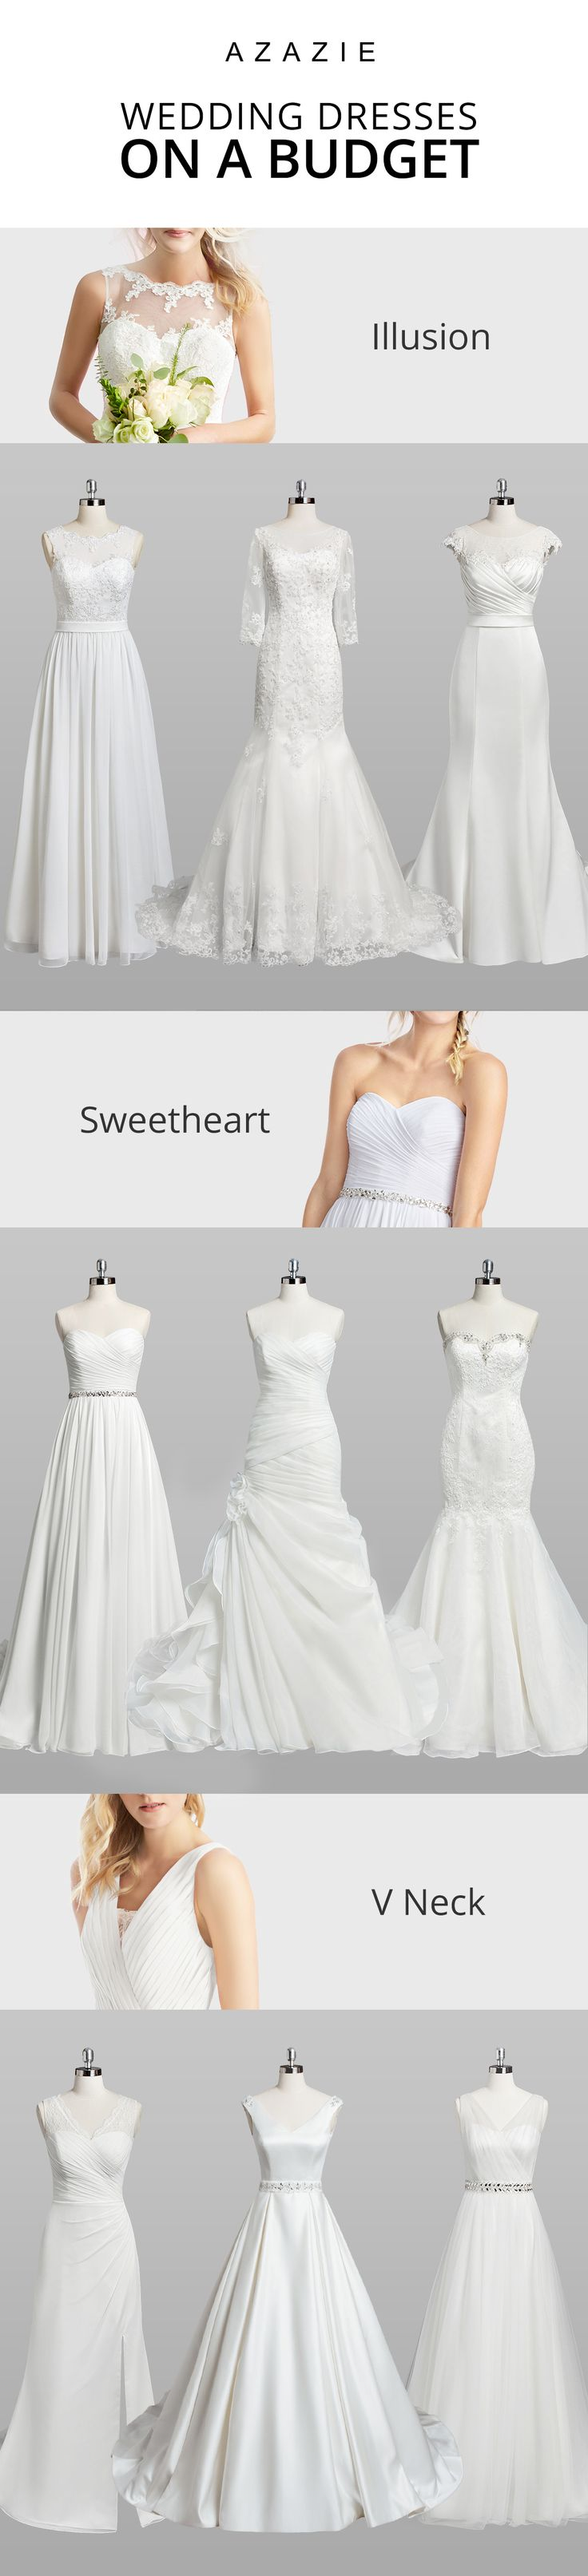 403 best Azazie Collection images on Pinterest | Casamento, Wedding ...